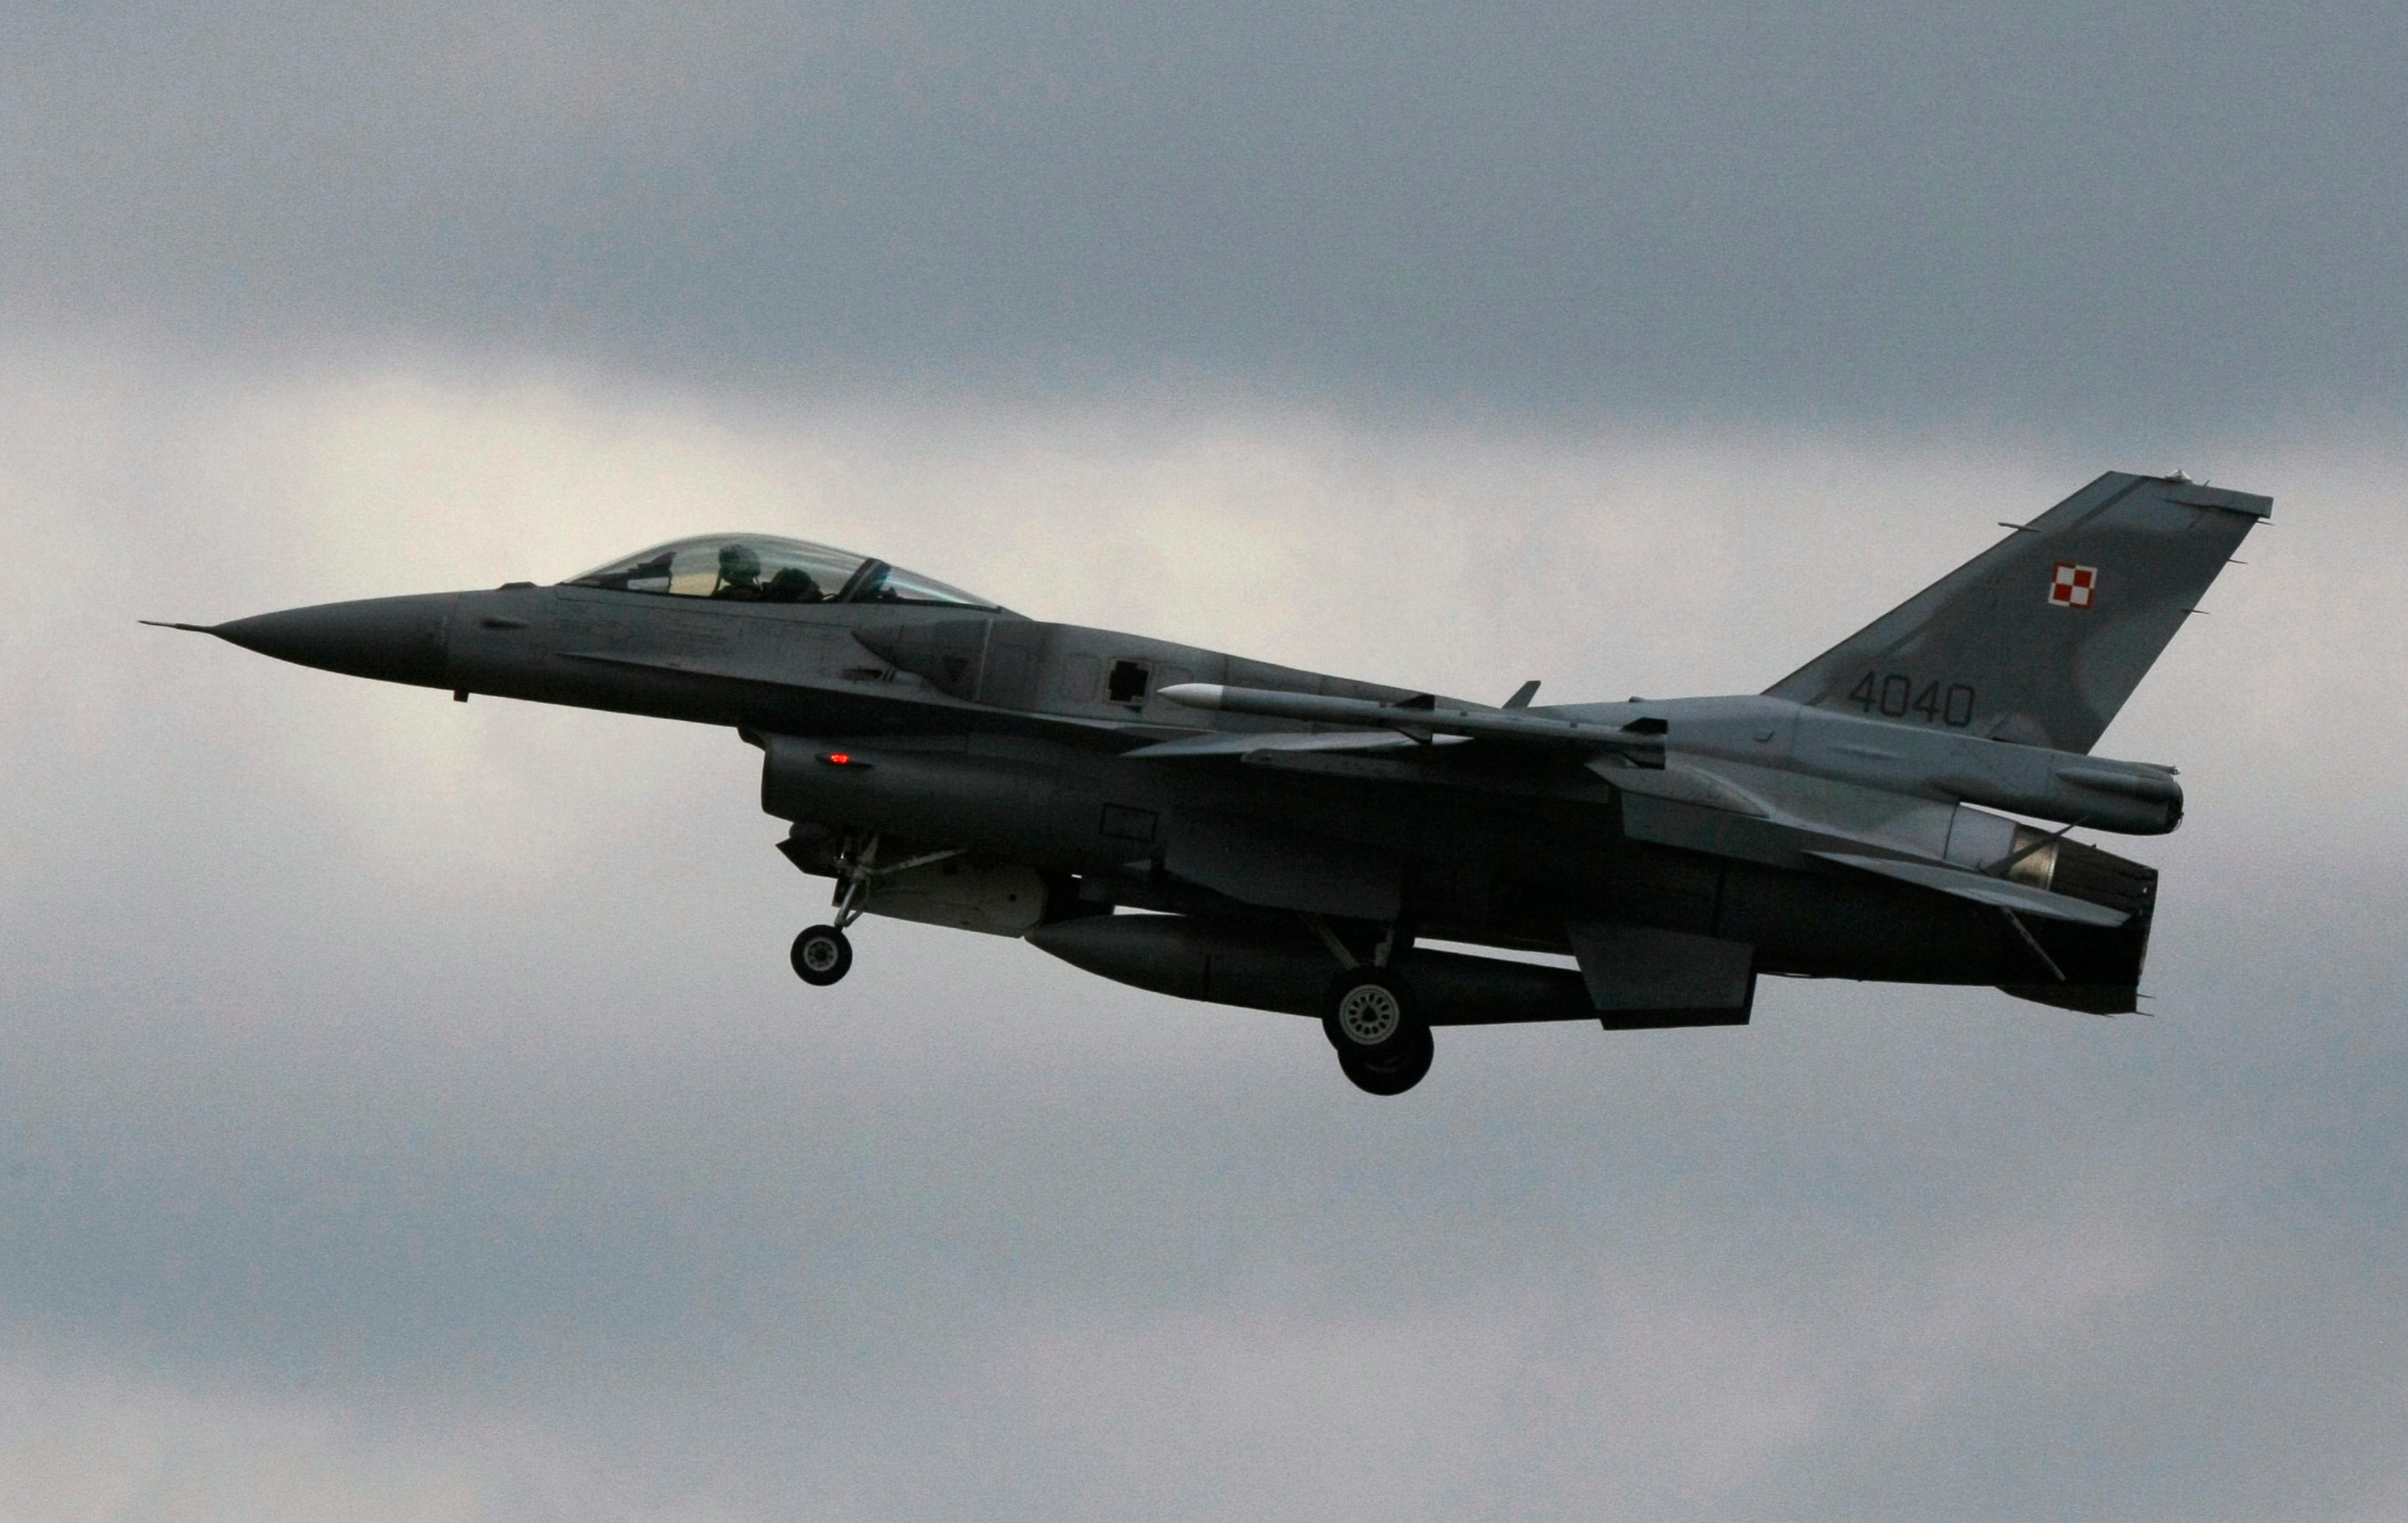 Poland to deploy F-16 combat planes to Syria in reconnaissance role - Business Insider